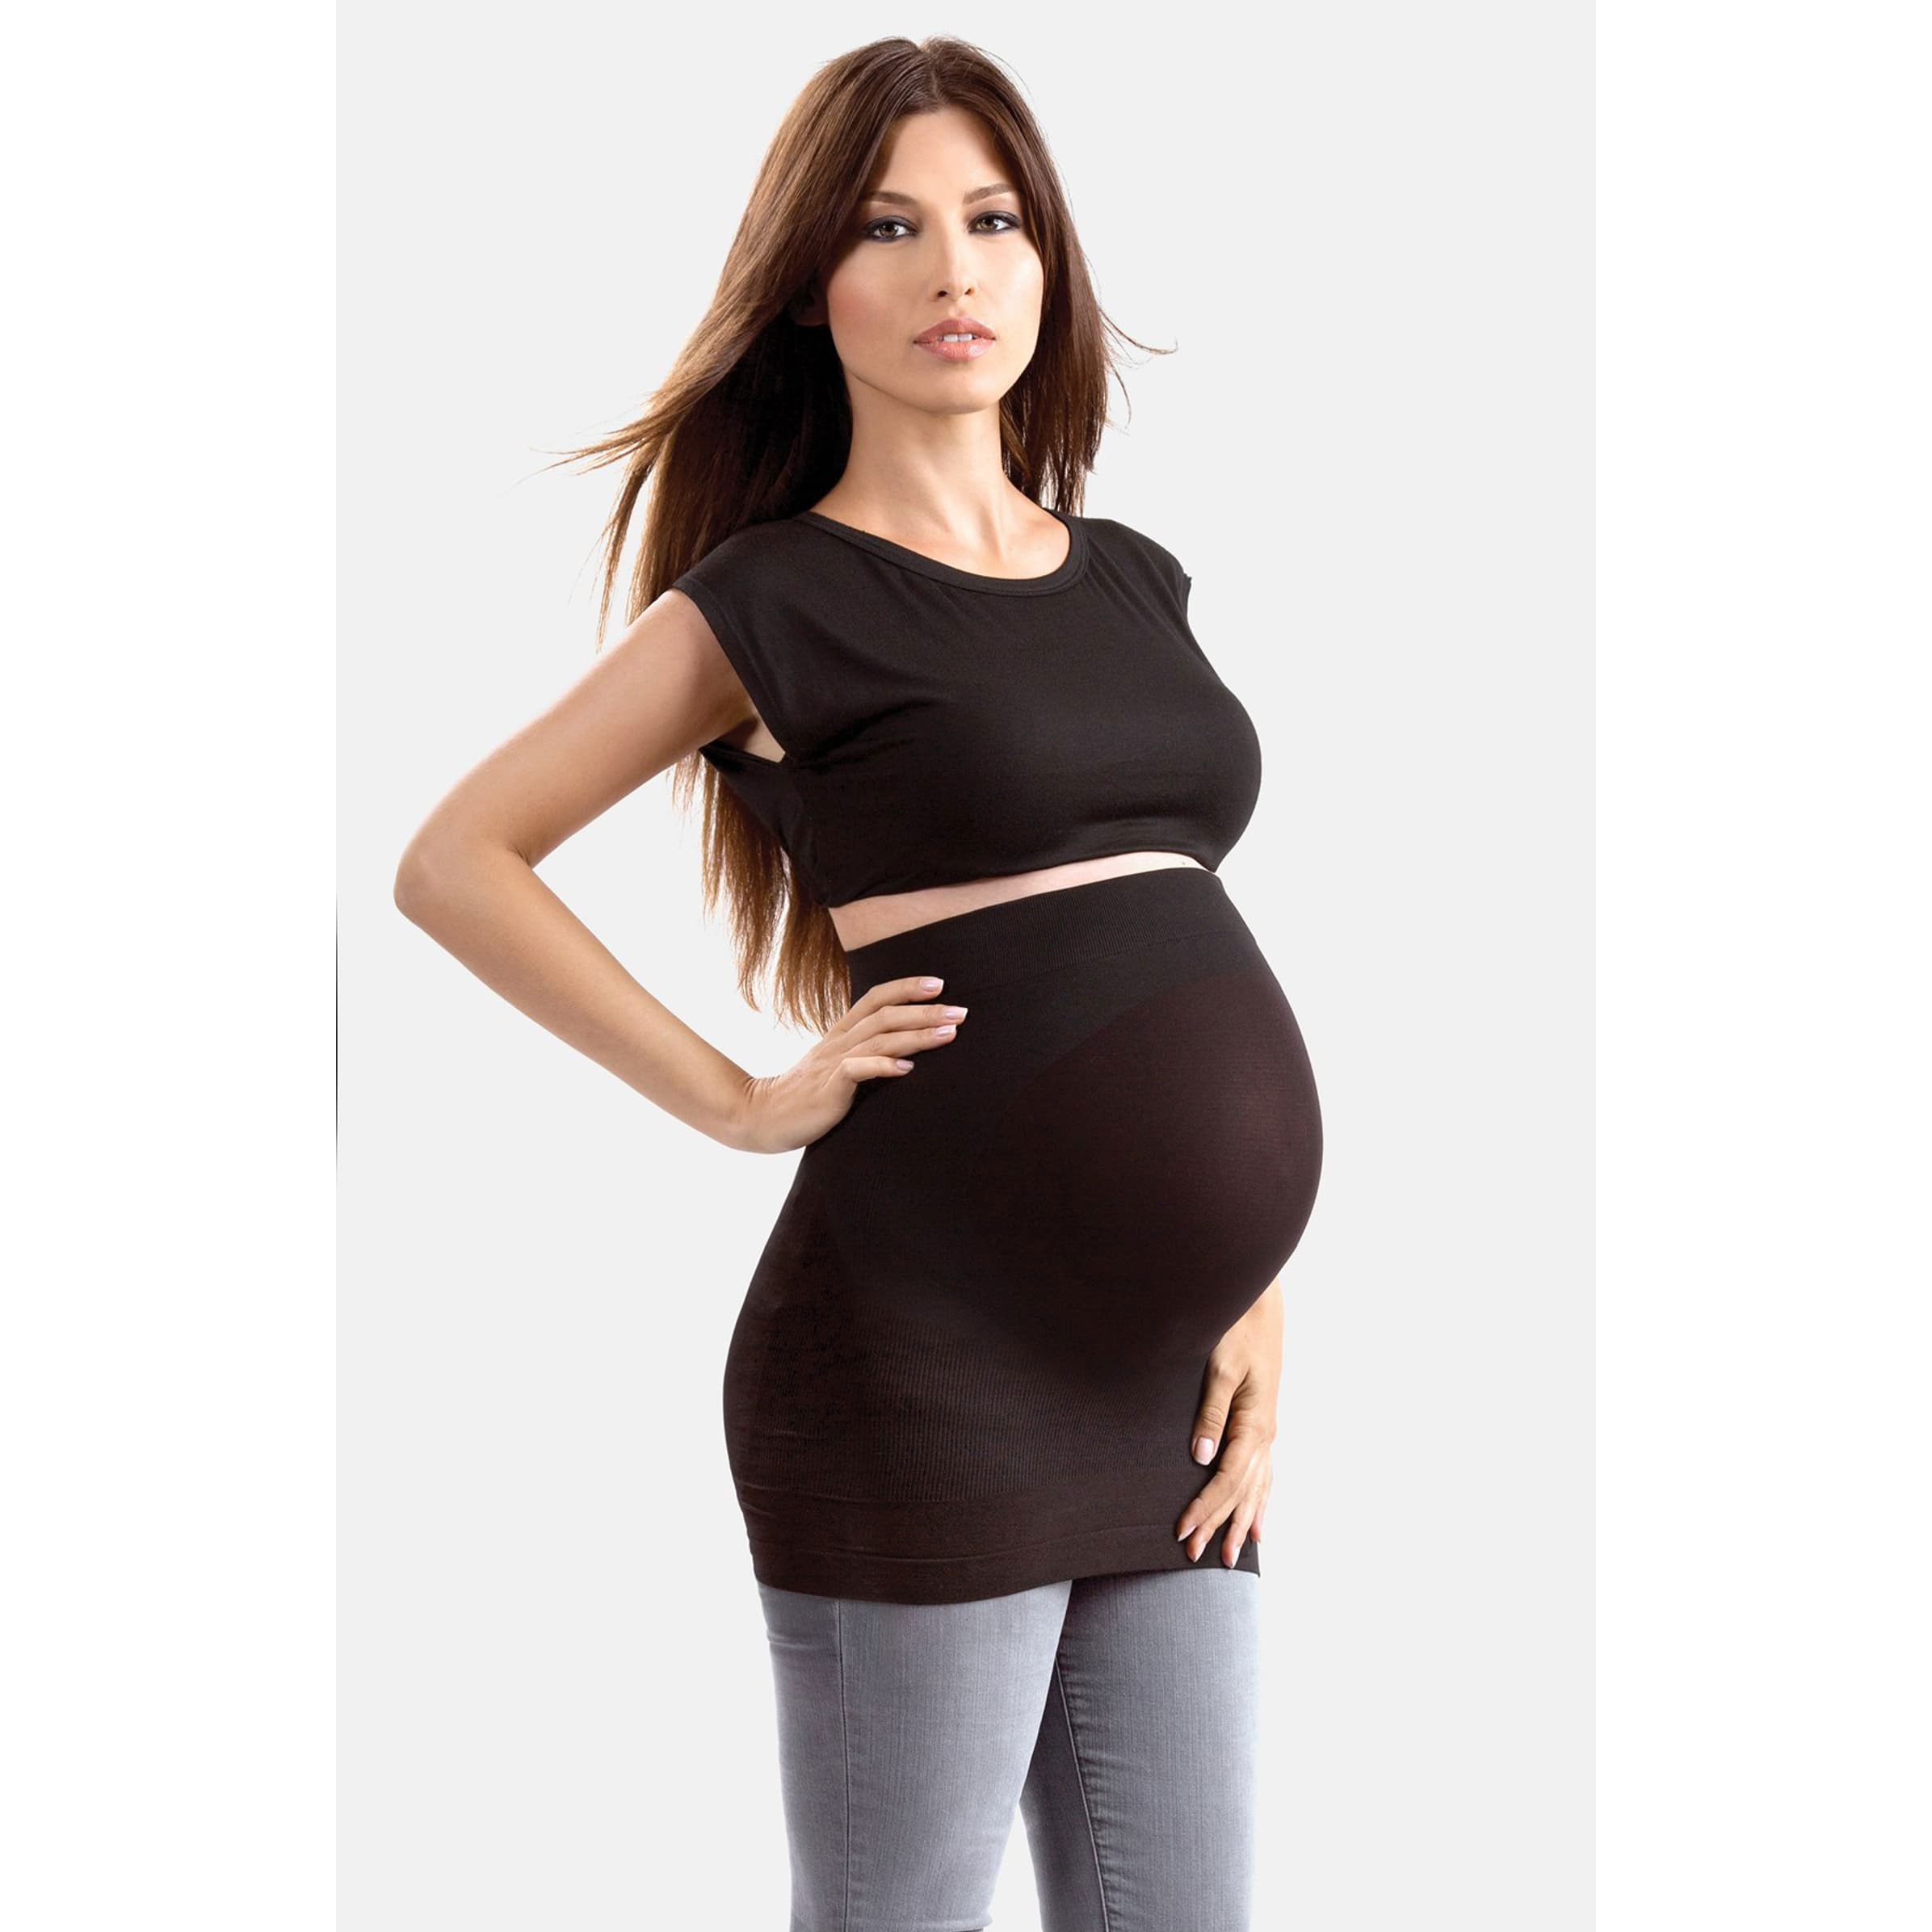 Blanqui Everyday Maternity Built-In Support Belly Band